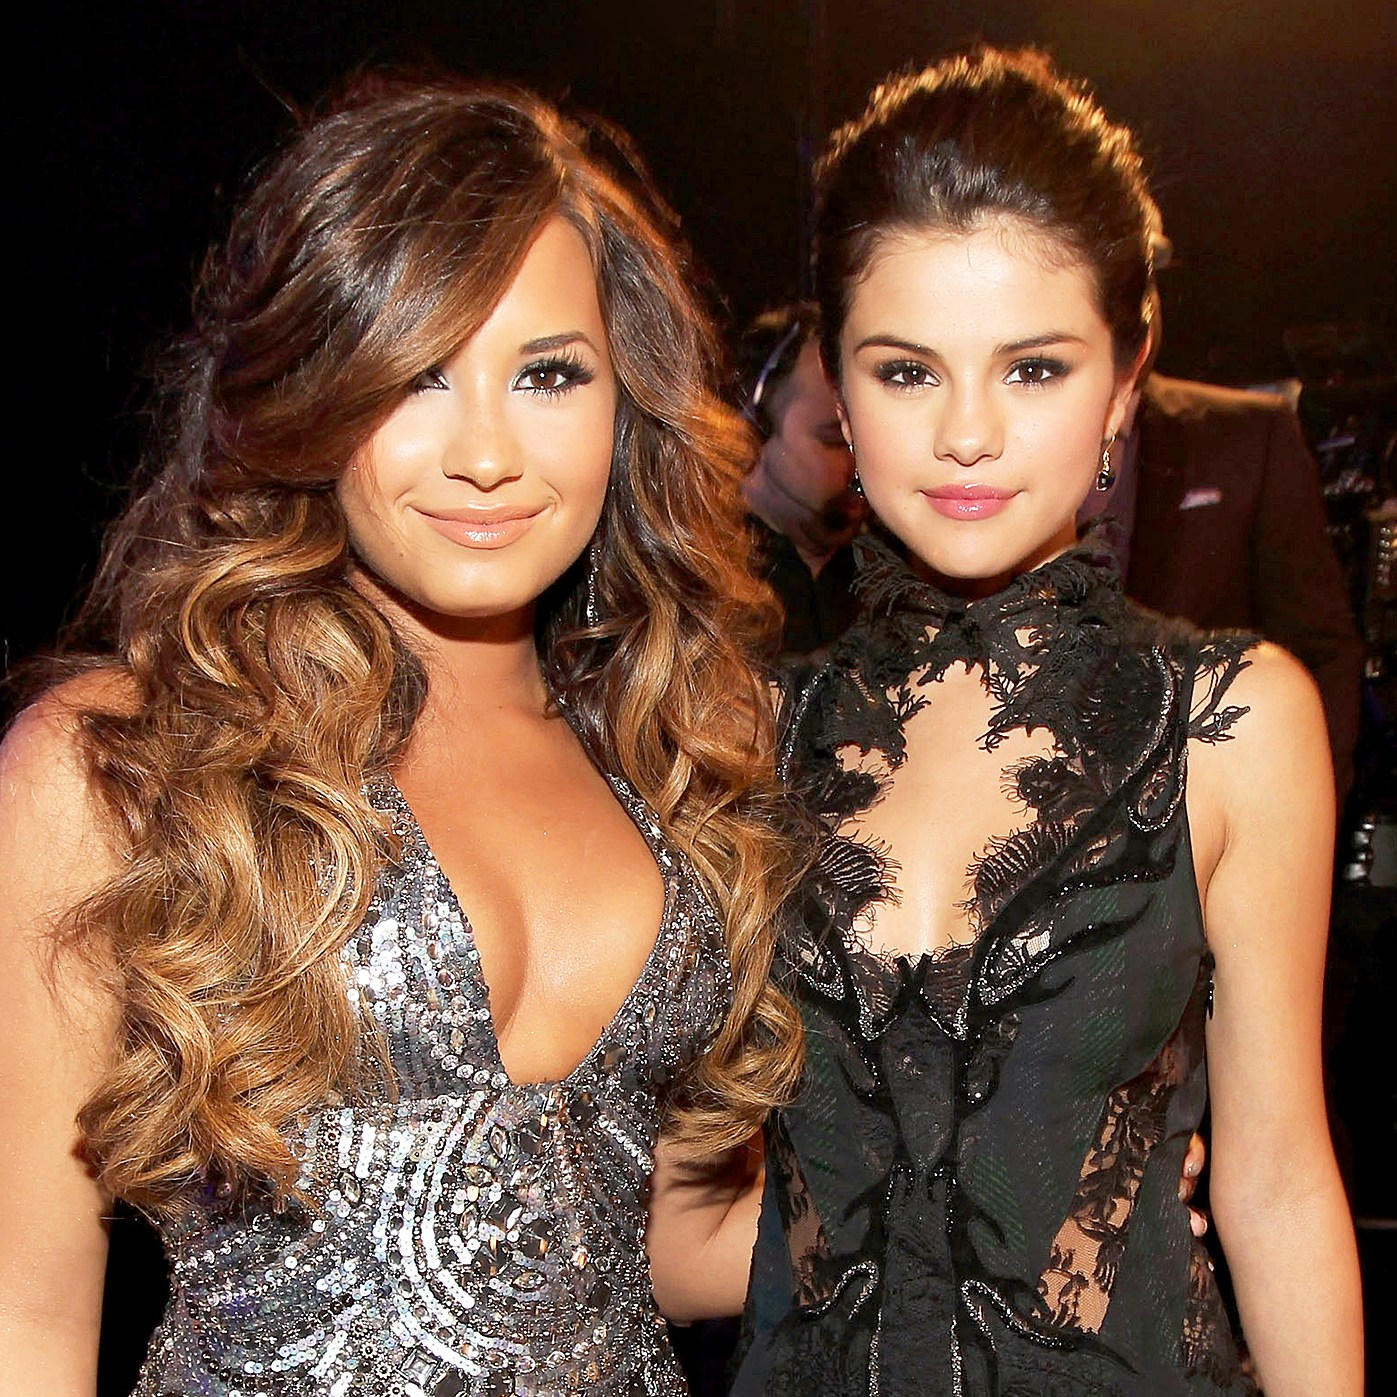 Demi Lovato and Selena Gomez